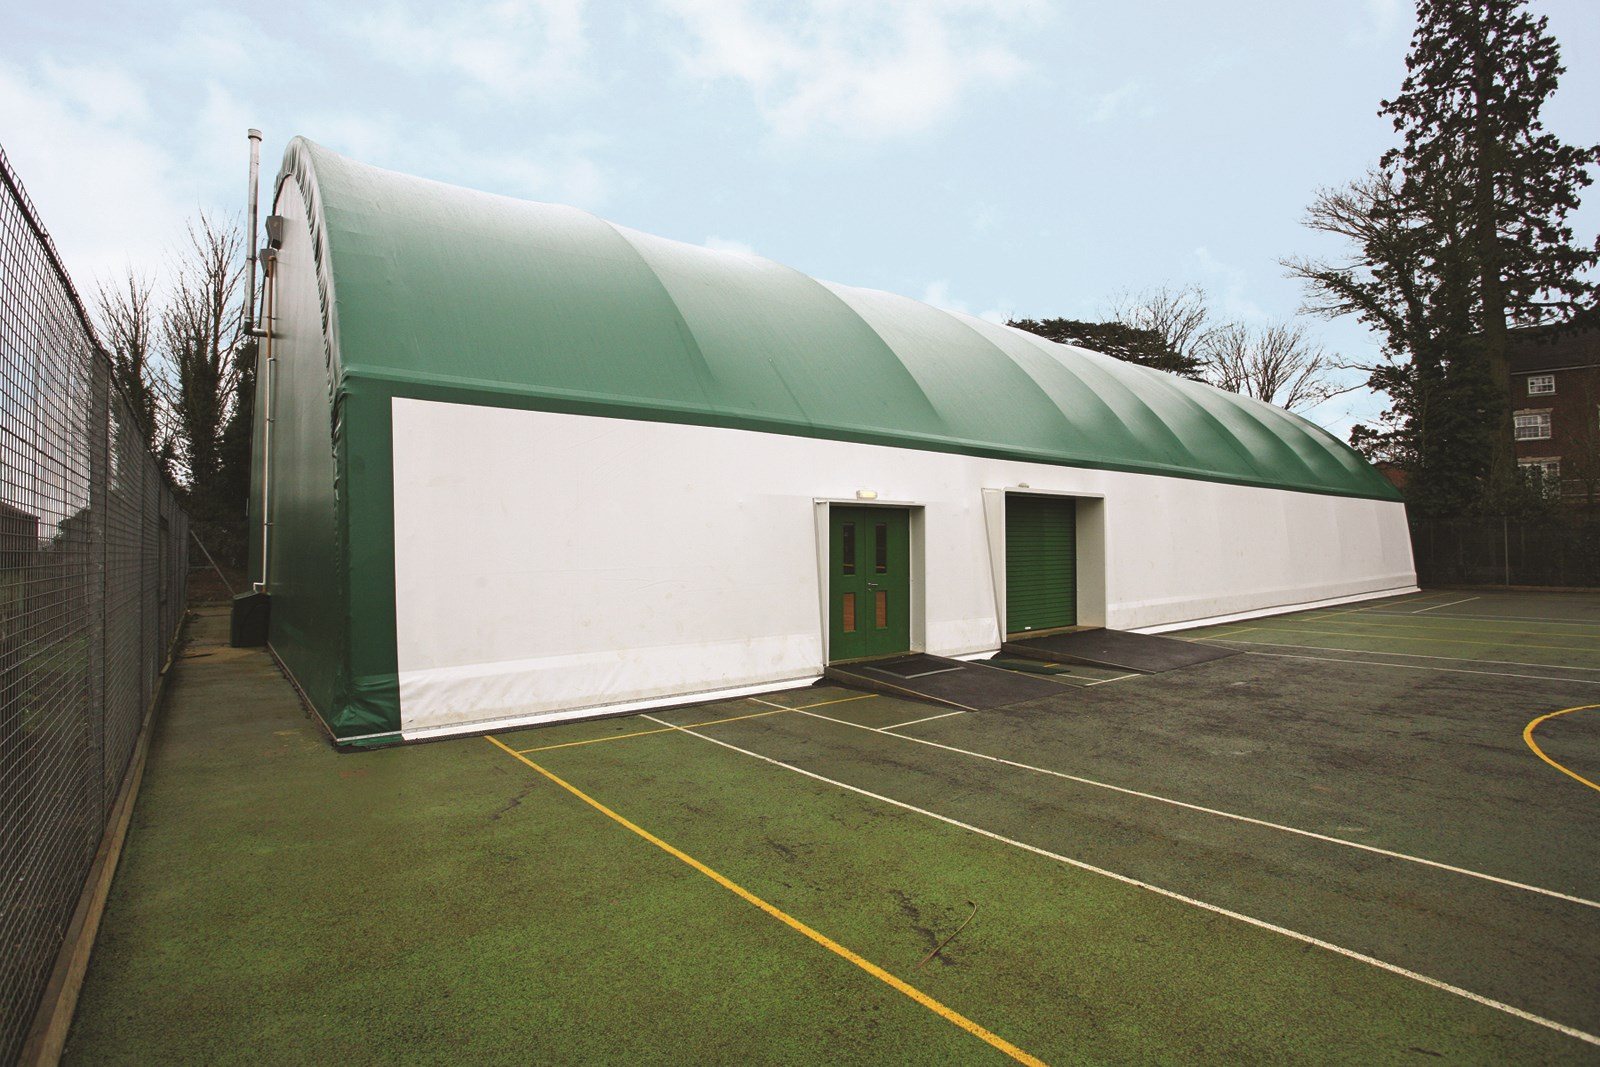 indoor-sports-center-spratton-hall-jubilee-dome